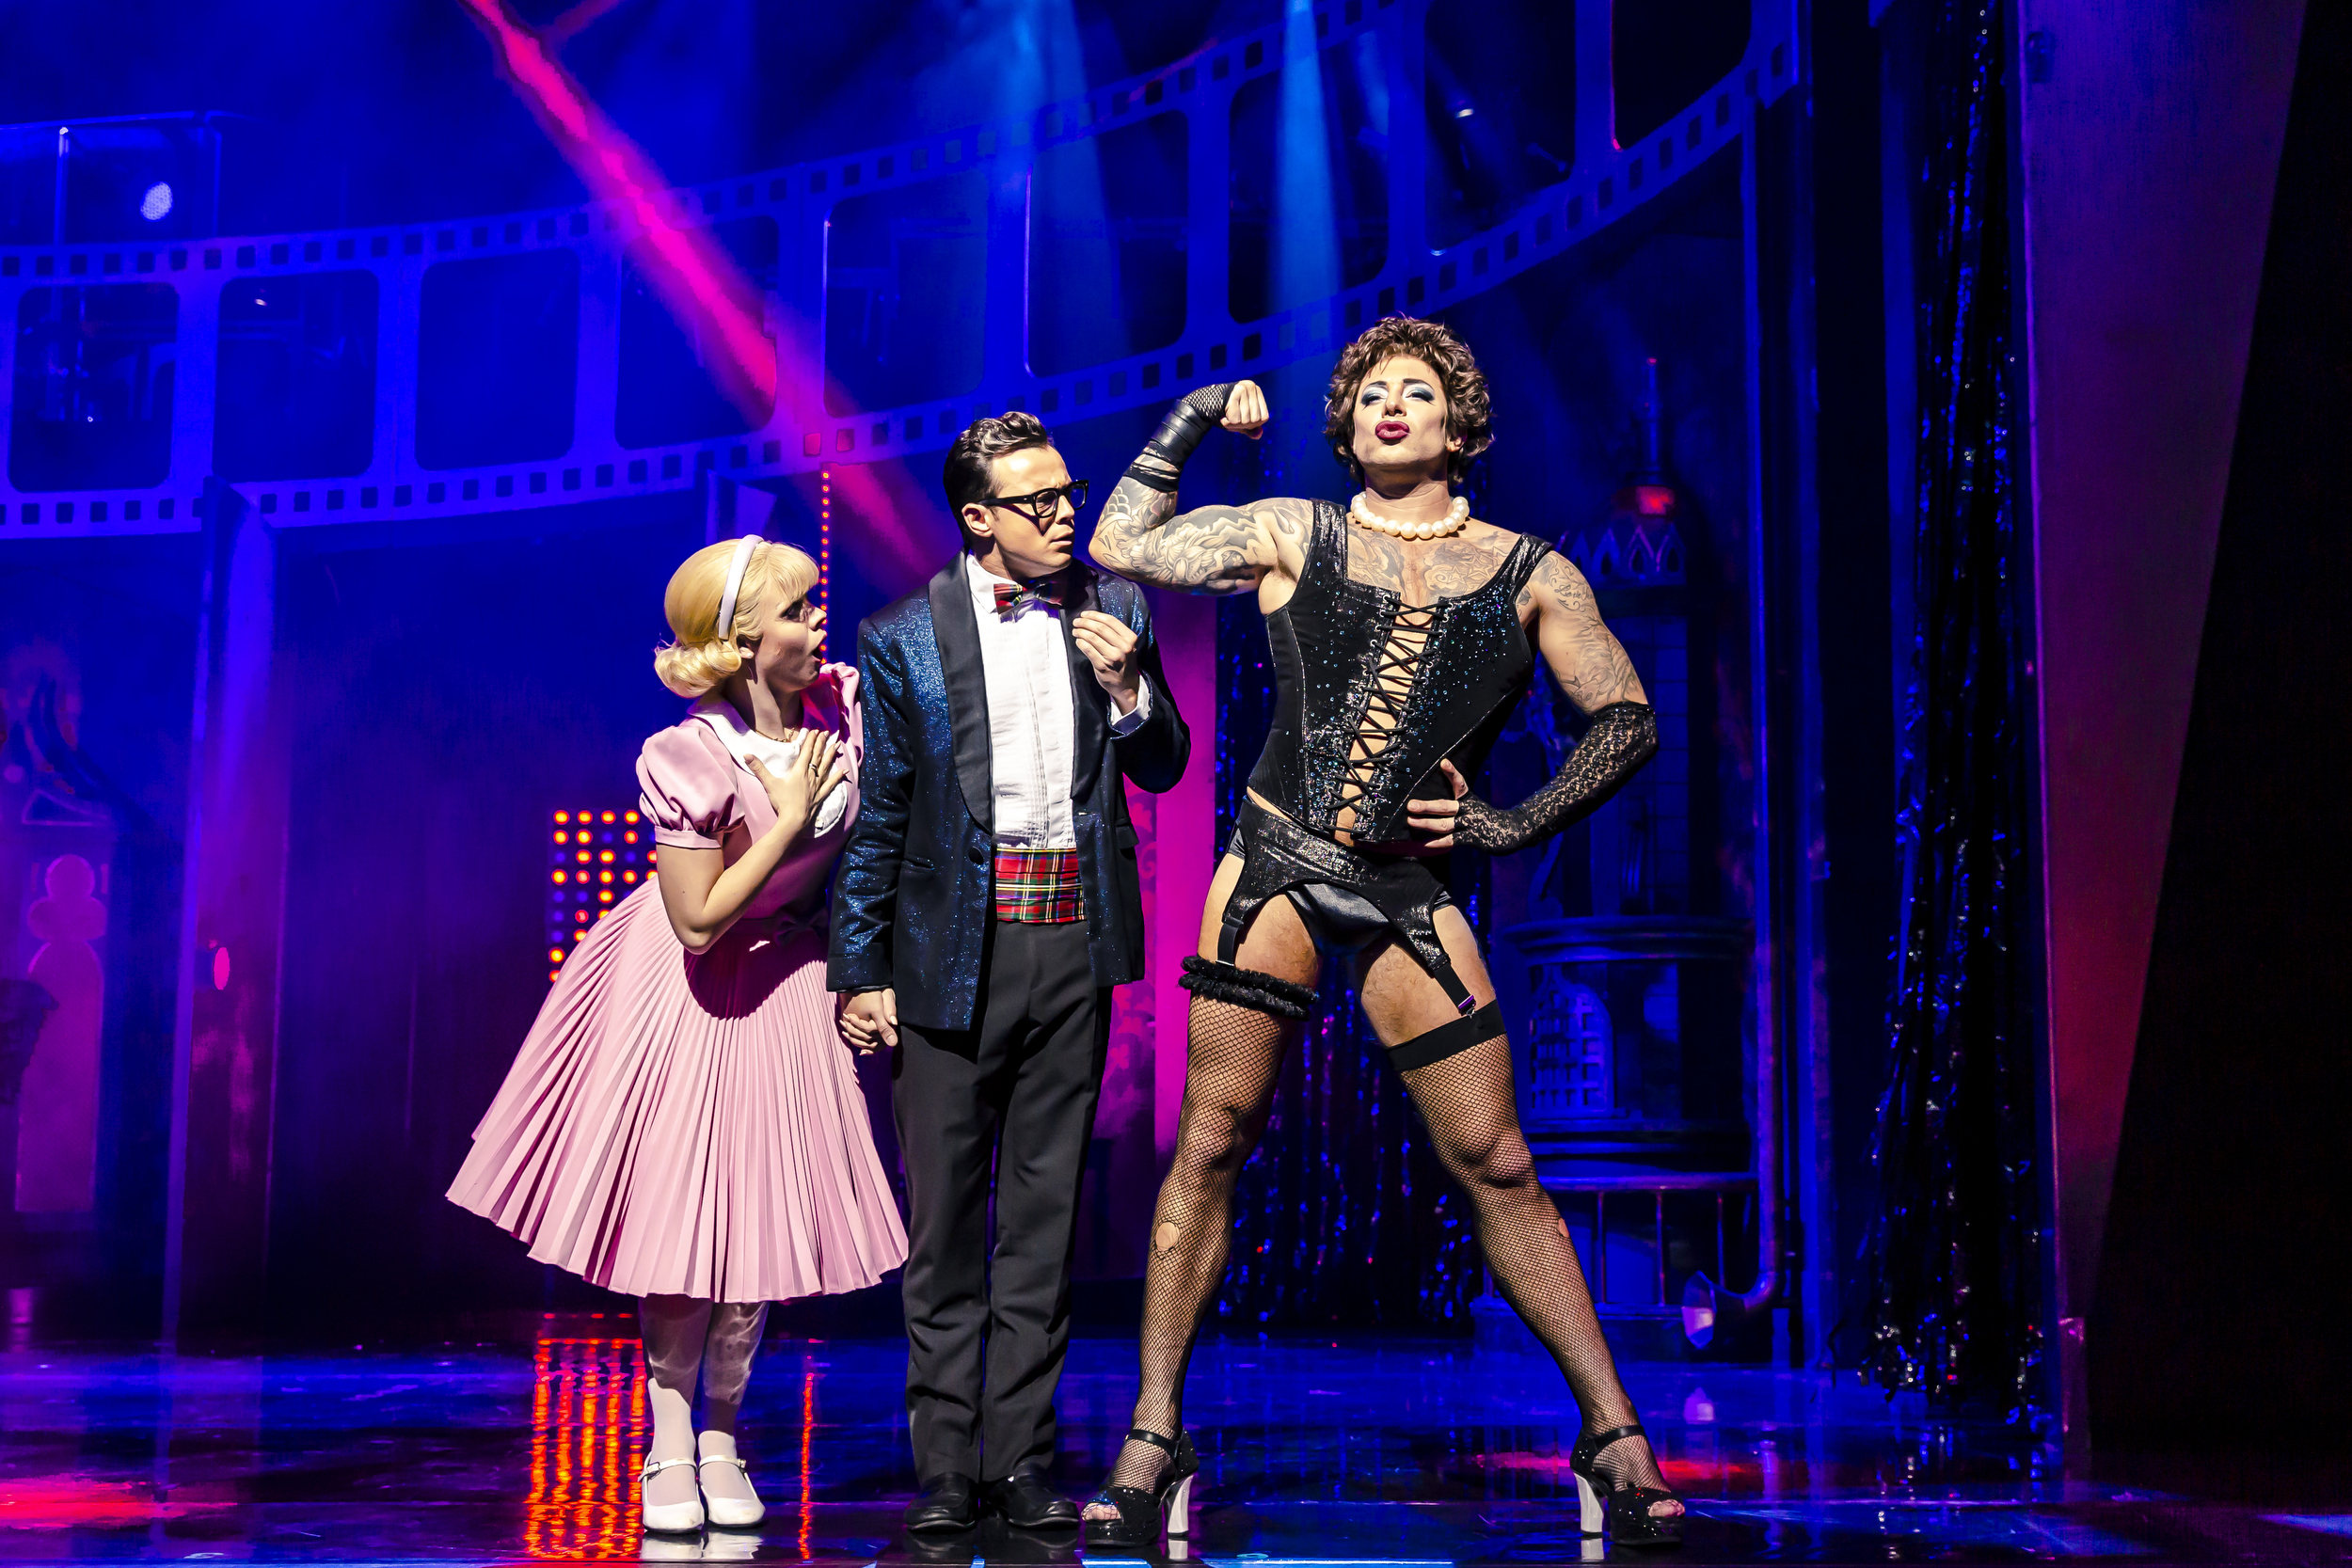 032719TOR834EMGRockyHorrorPictureShowPRODUCTION_TIFF8.JPG